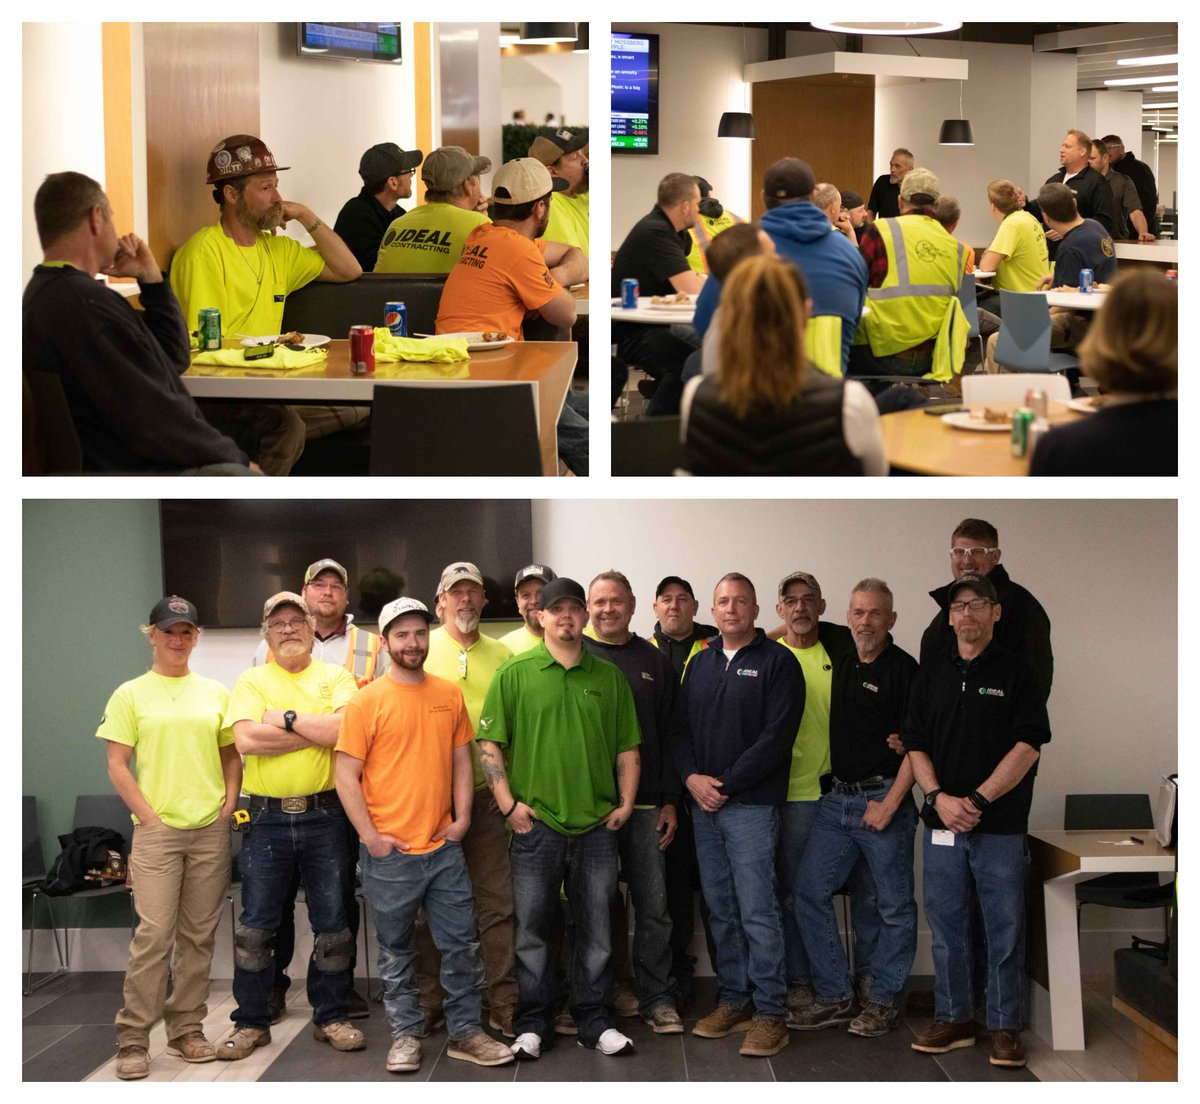 test Twitter Media - Celebrating record-breaking safety! Congratulations to our team at the General Motors Renaissance Center. Stay tuned for our next newsletter to read more about the team. https://t.co/yX9L1RSV2g